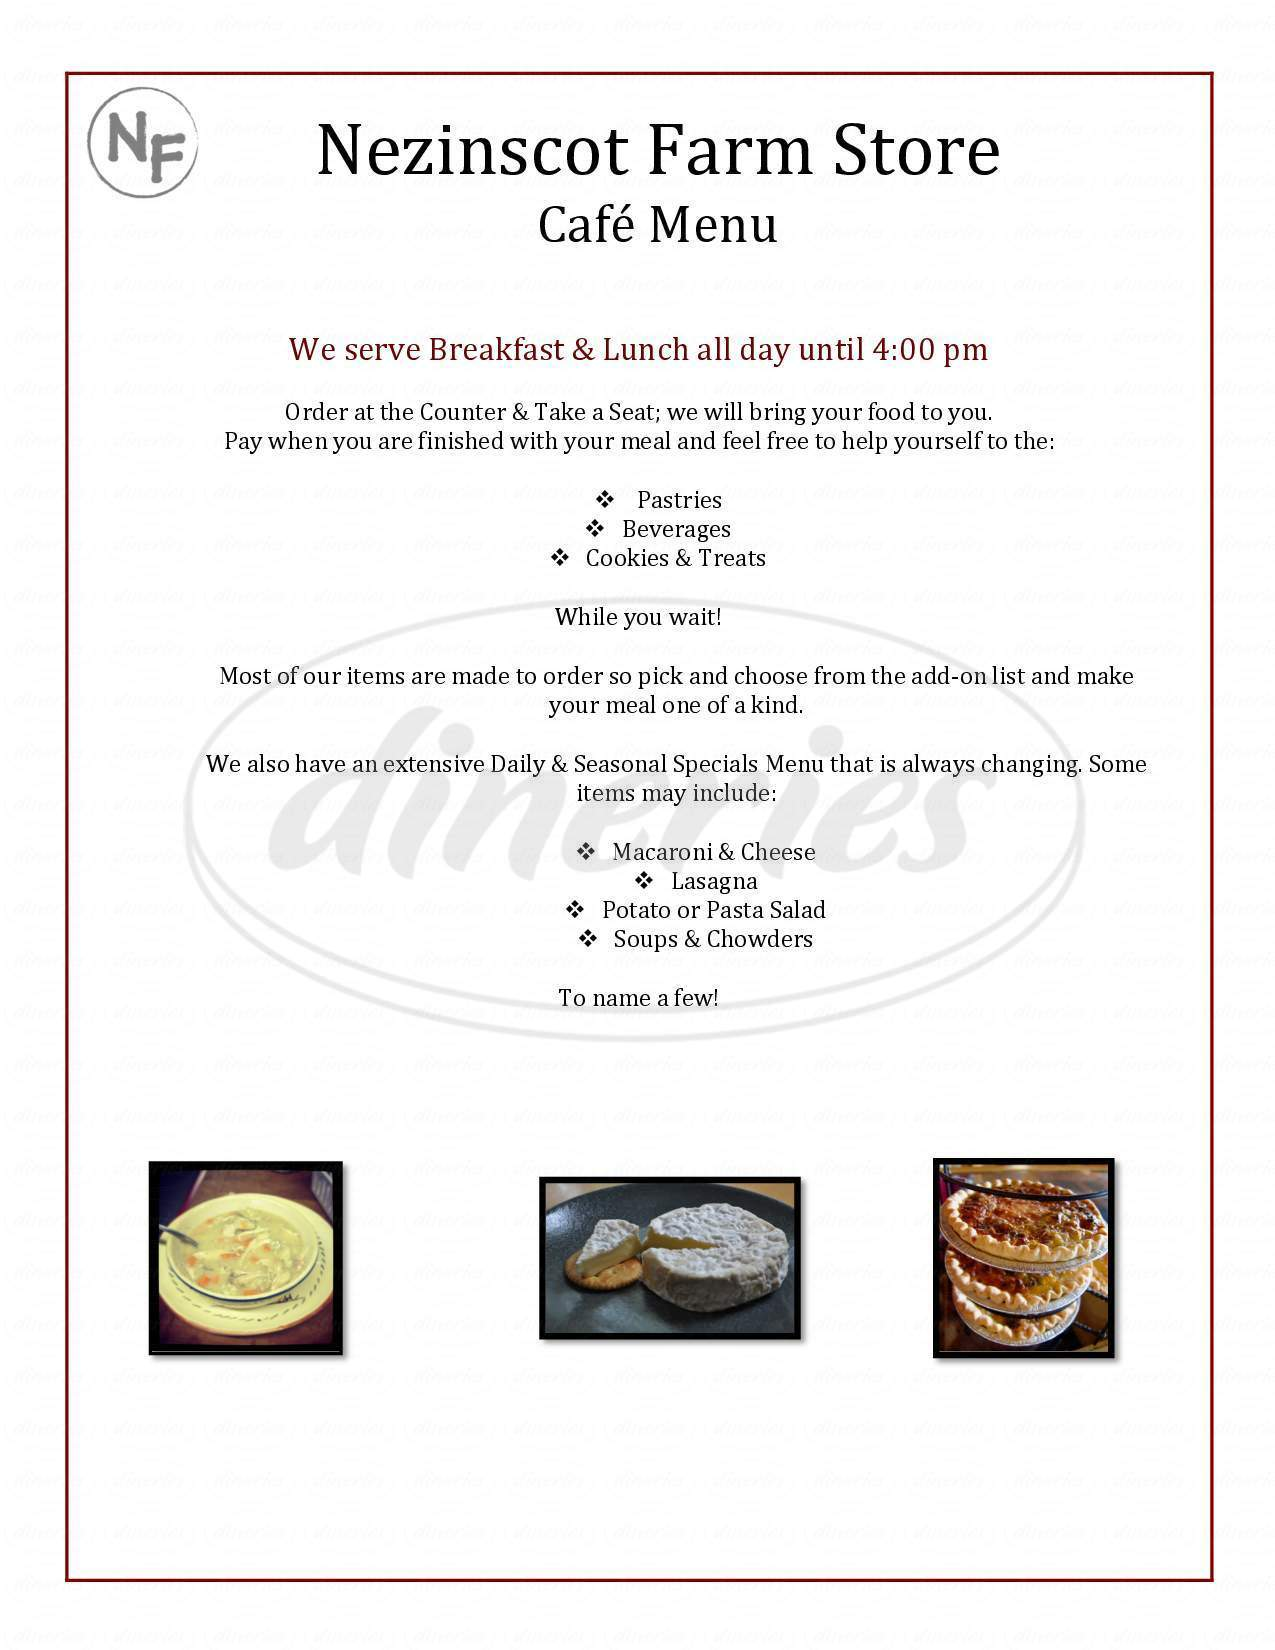 menu for Nezinscot Farm Cafe & Gourmet Food Shop